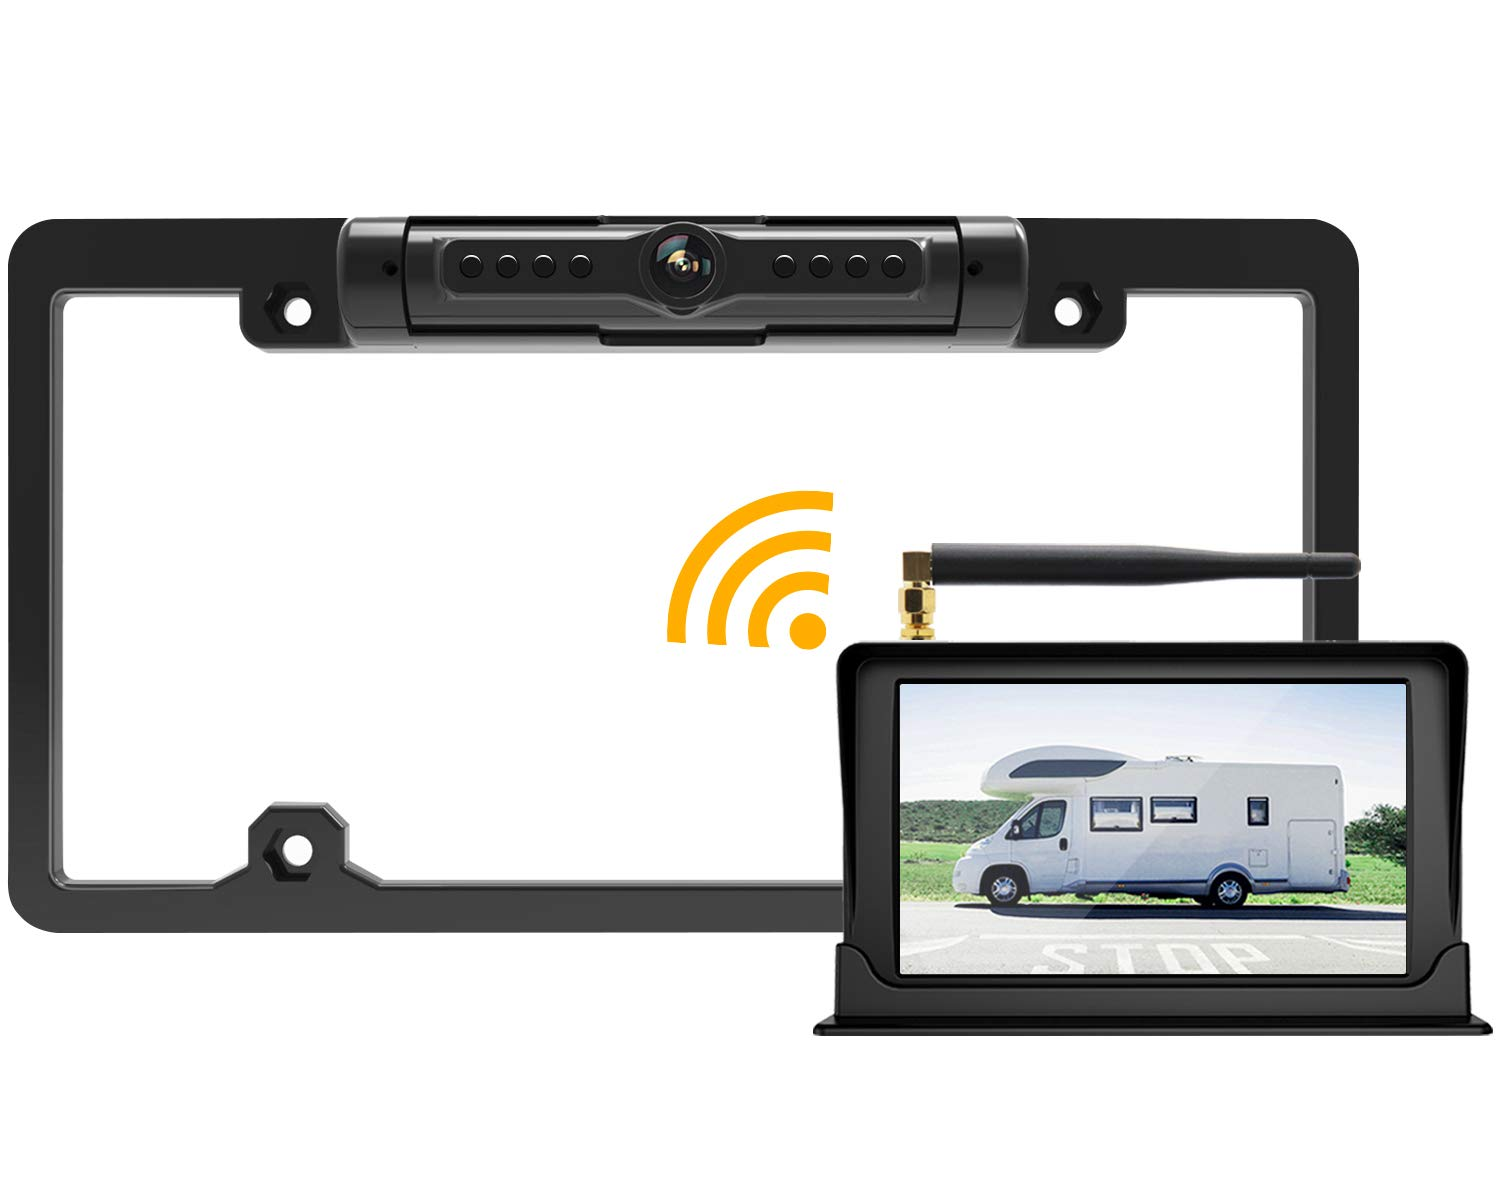 FOOKOO Wireless Backup Camera and Monitor Kit 5'' HD Screen License Plate Camera with Frame IP69K Waterproof Rear View Camera with Parking Lines 170° Viewing Angle Universal for All Cars by Fookoo